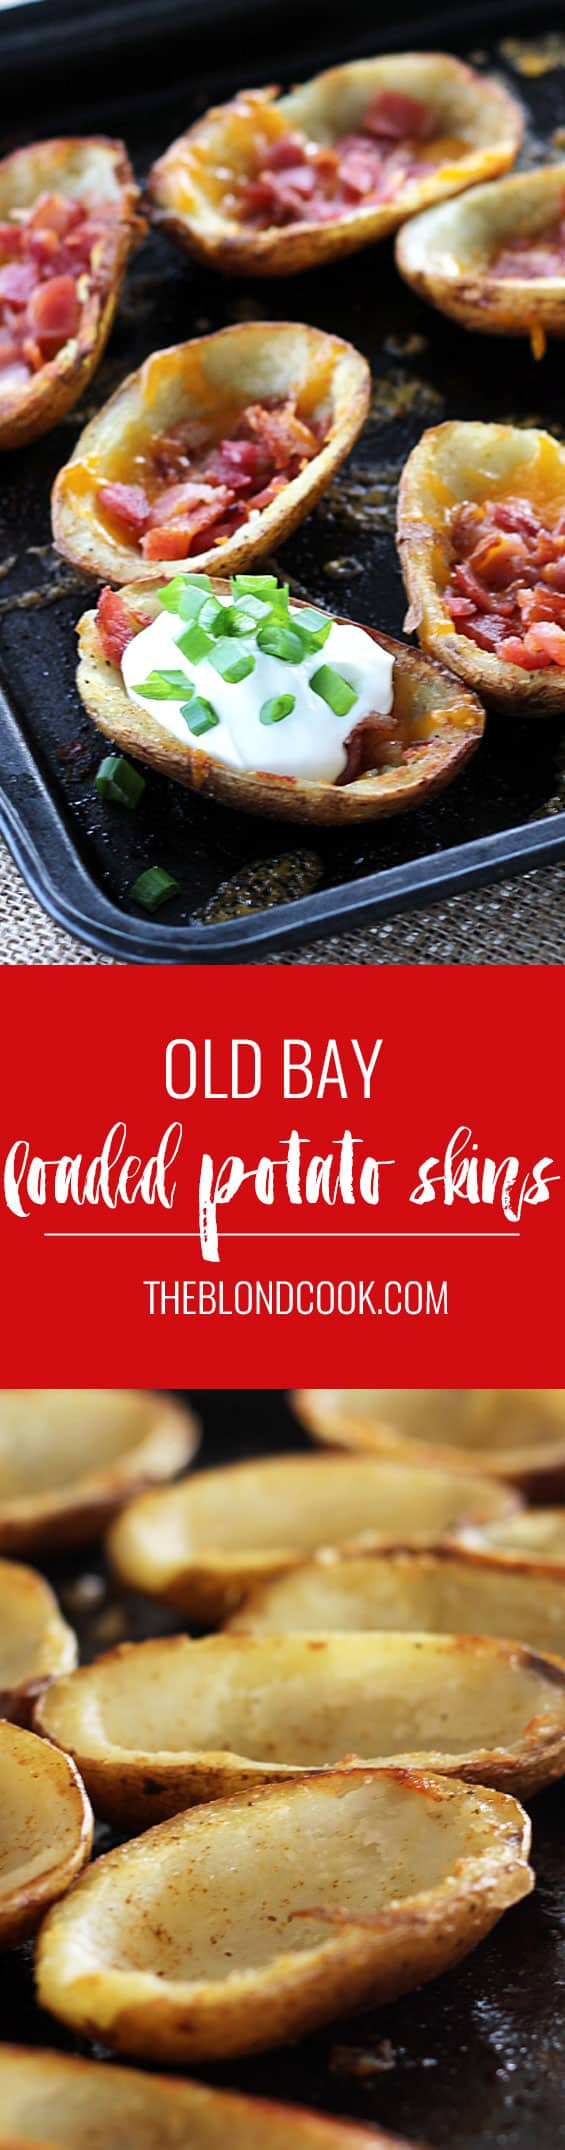 Old Bay Potato Skins - Loaded potato skins seasoned with Old Bay | theblondcook.com